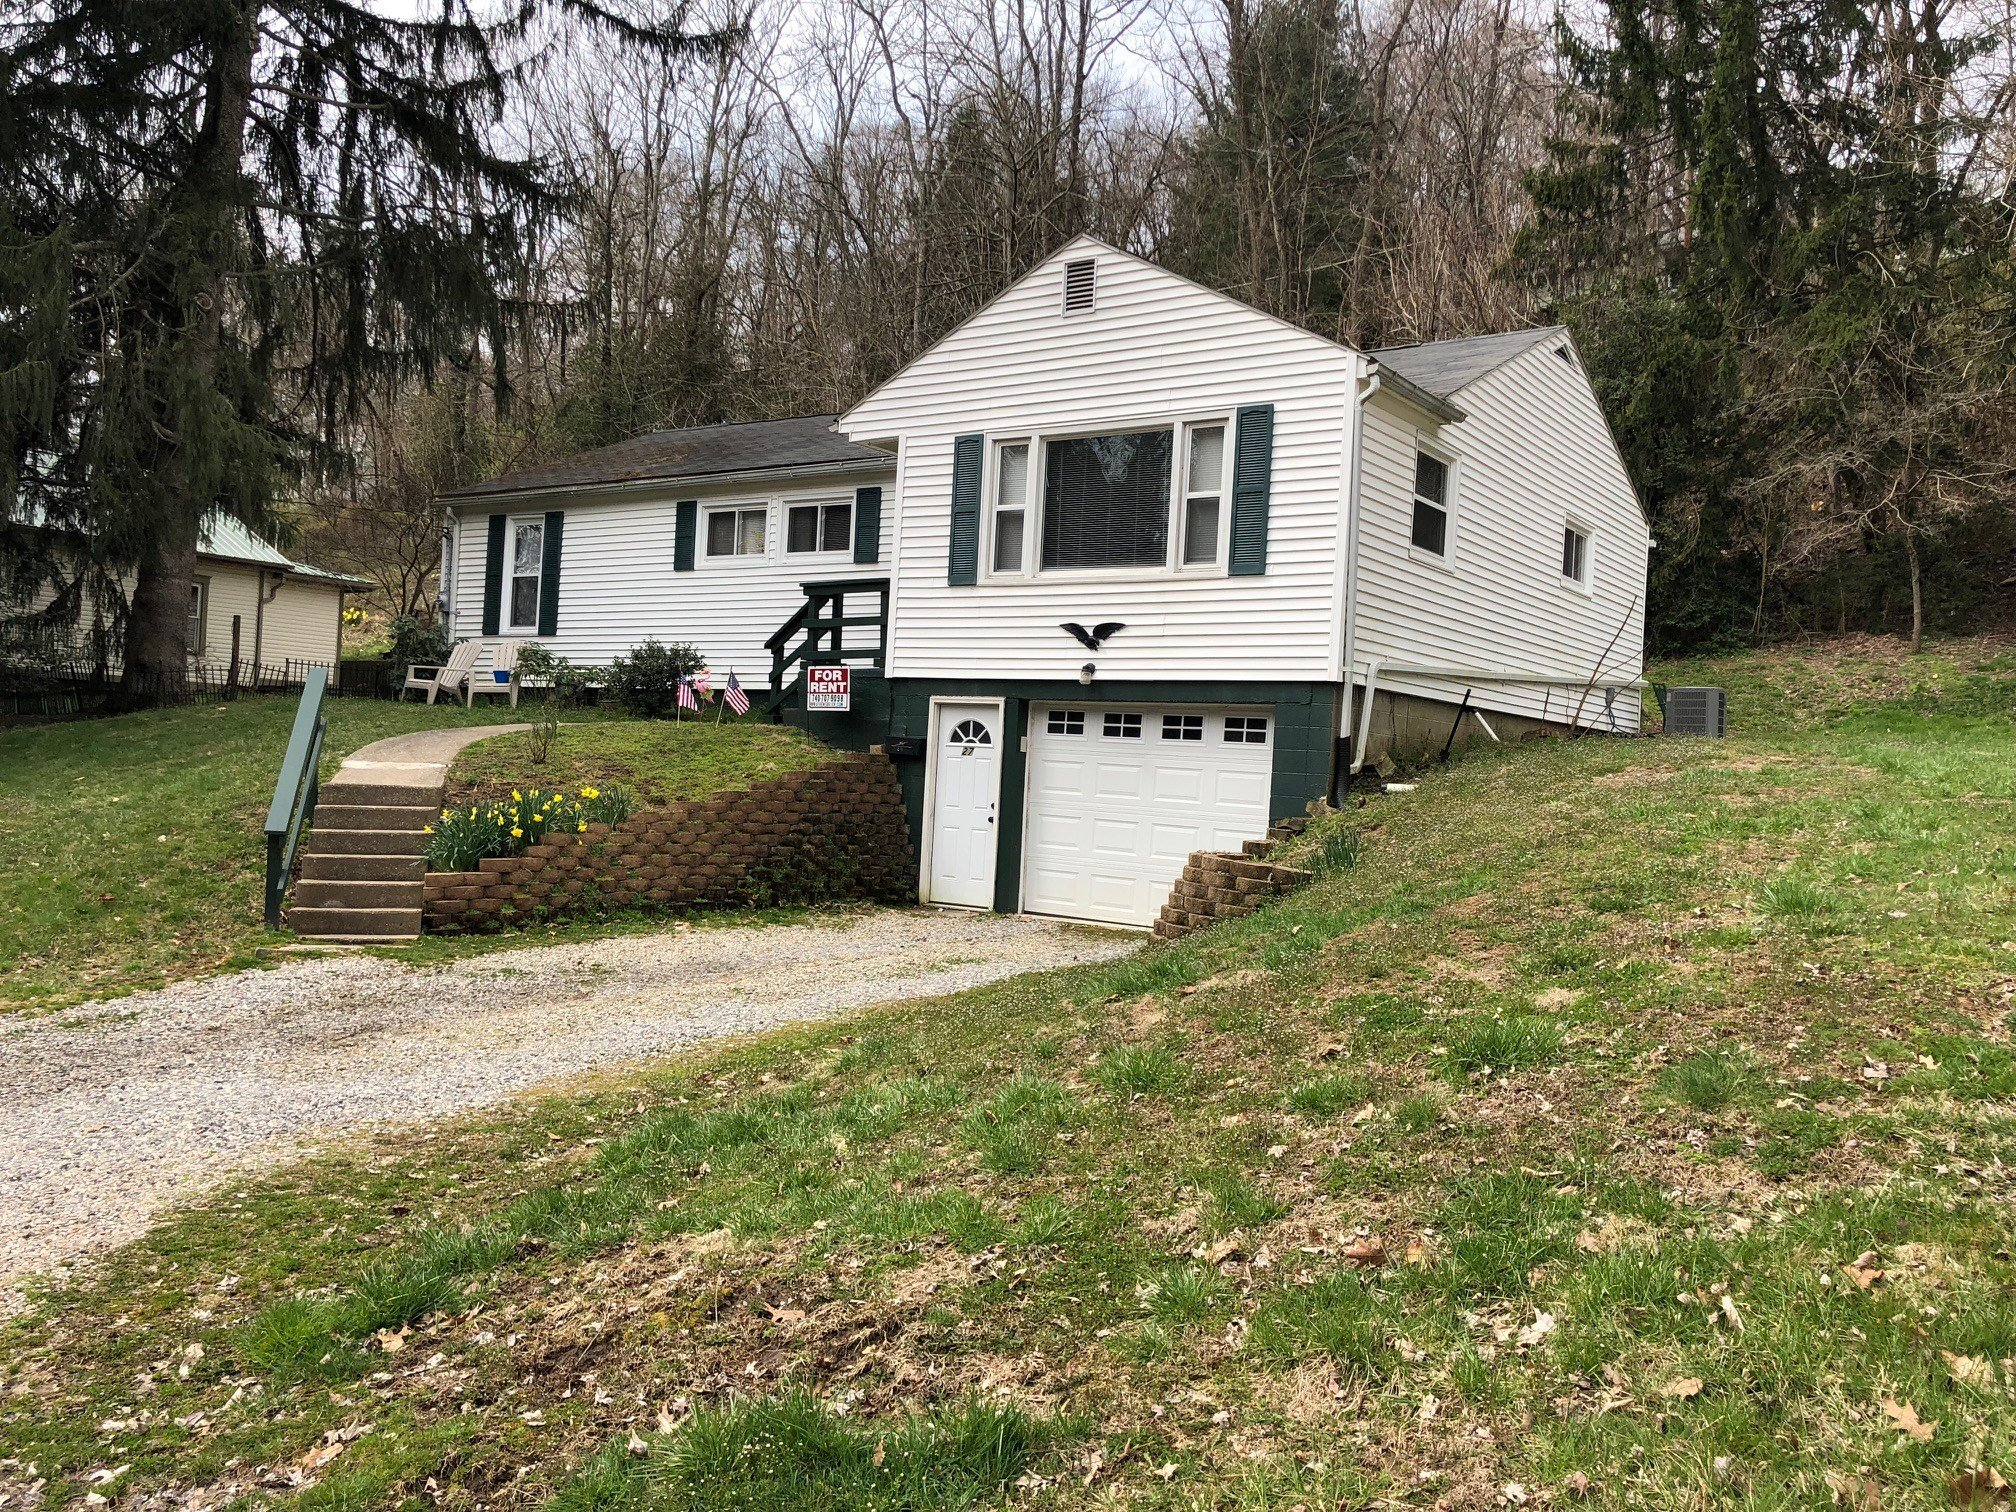 Best 27 Spring Street 4 Bedroom House For Rent In Athens Ohio – Lease Dates Are May 8 2022 Until May With Pictures